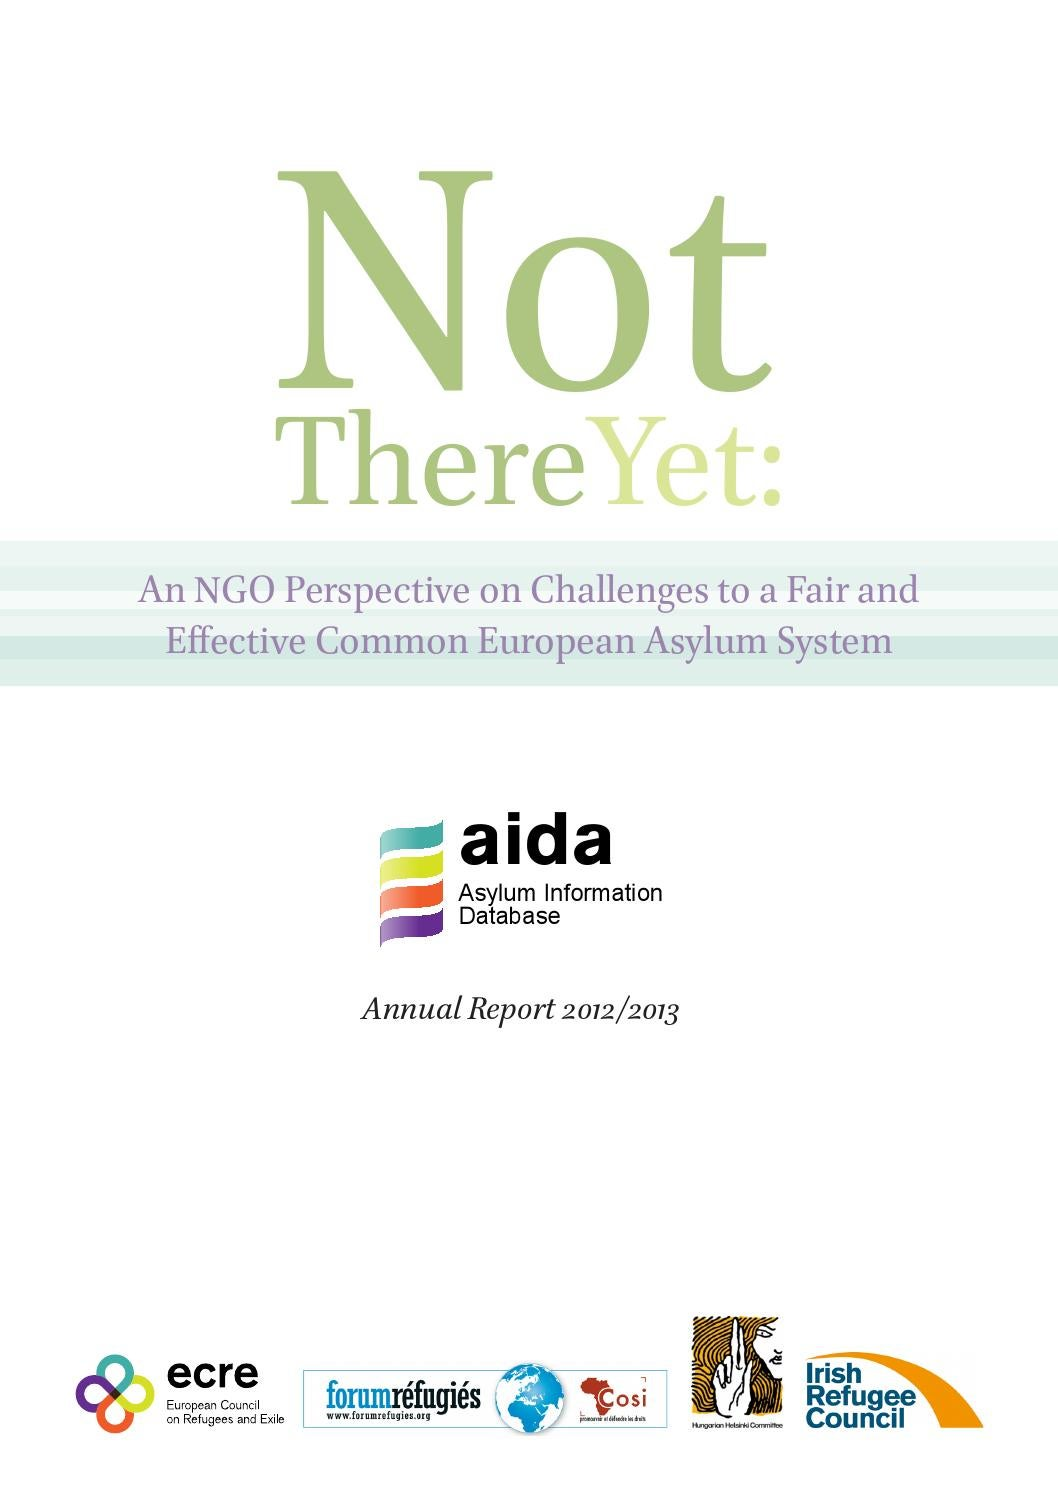 Not There Yet by European Country on Refugees and Exiles - issuu